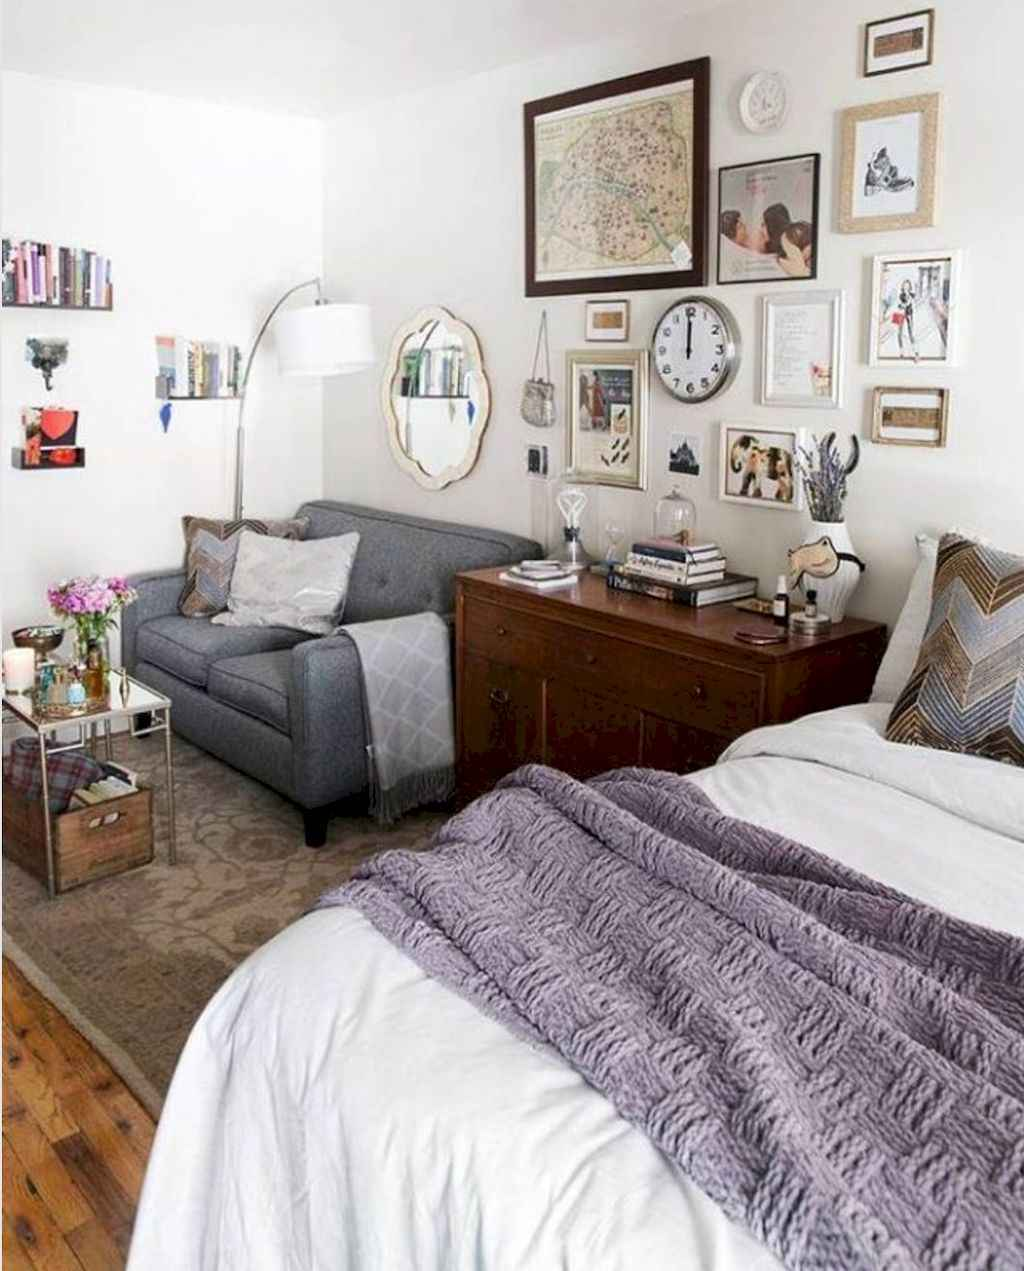 77 magnificent small studio apartment decor ideas 22 for Studio apartment living ideas